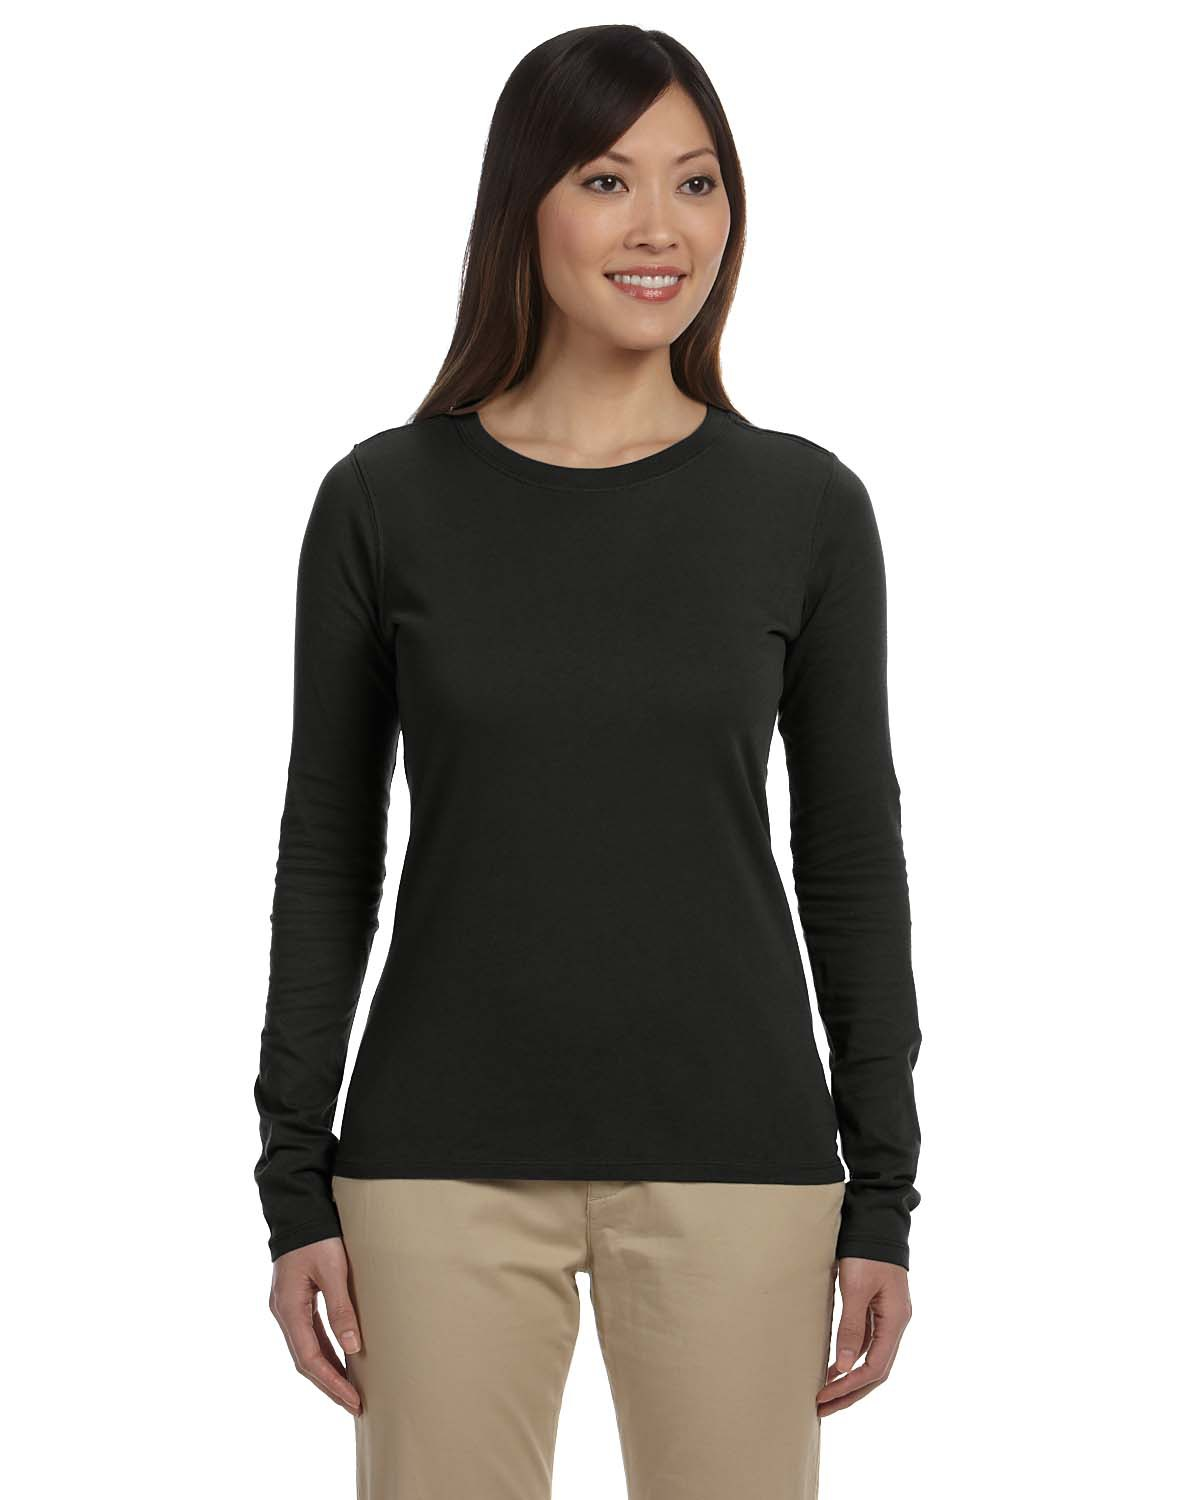 Certified Organic Cotton Women's Classic Long-Sleeve T-Shirt Tee